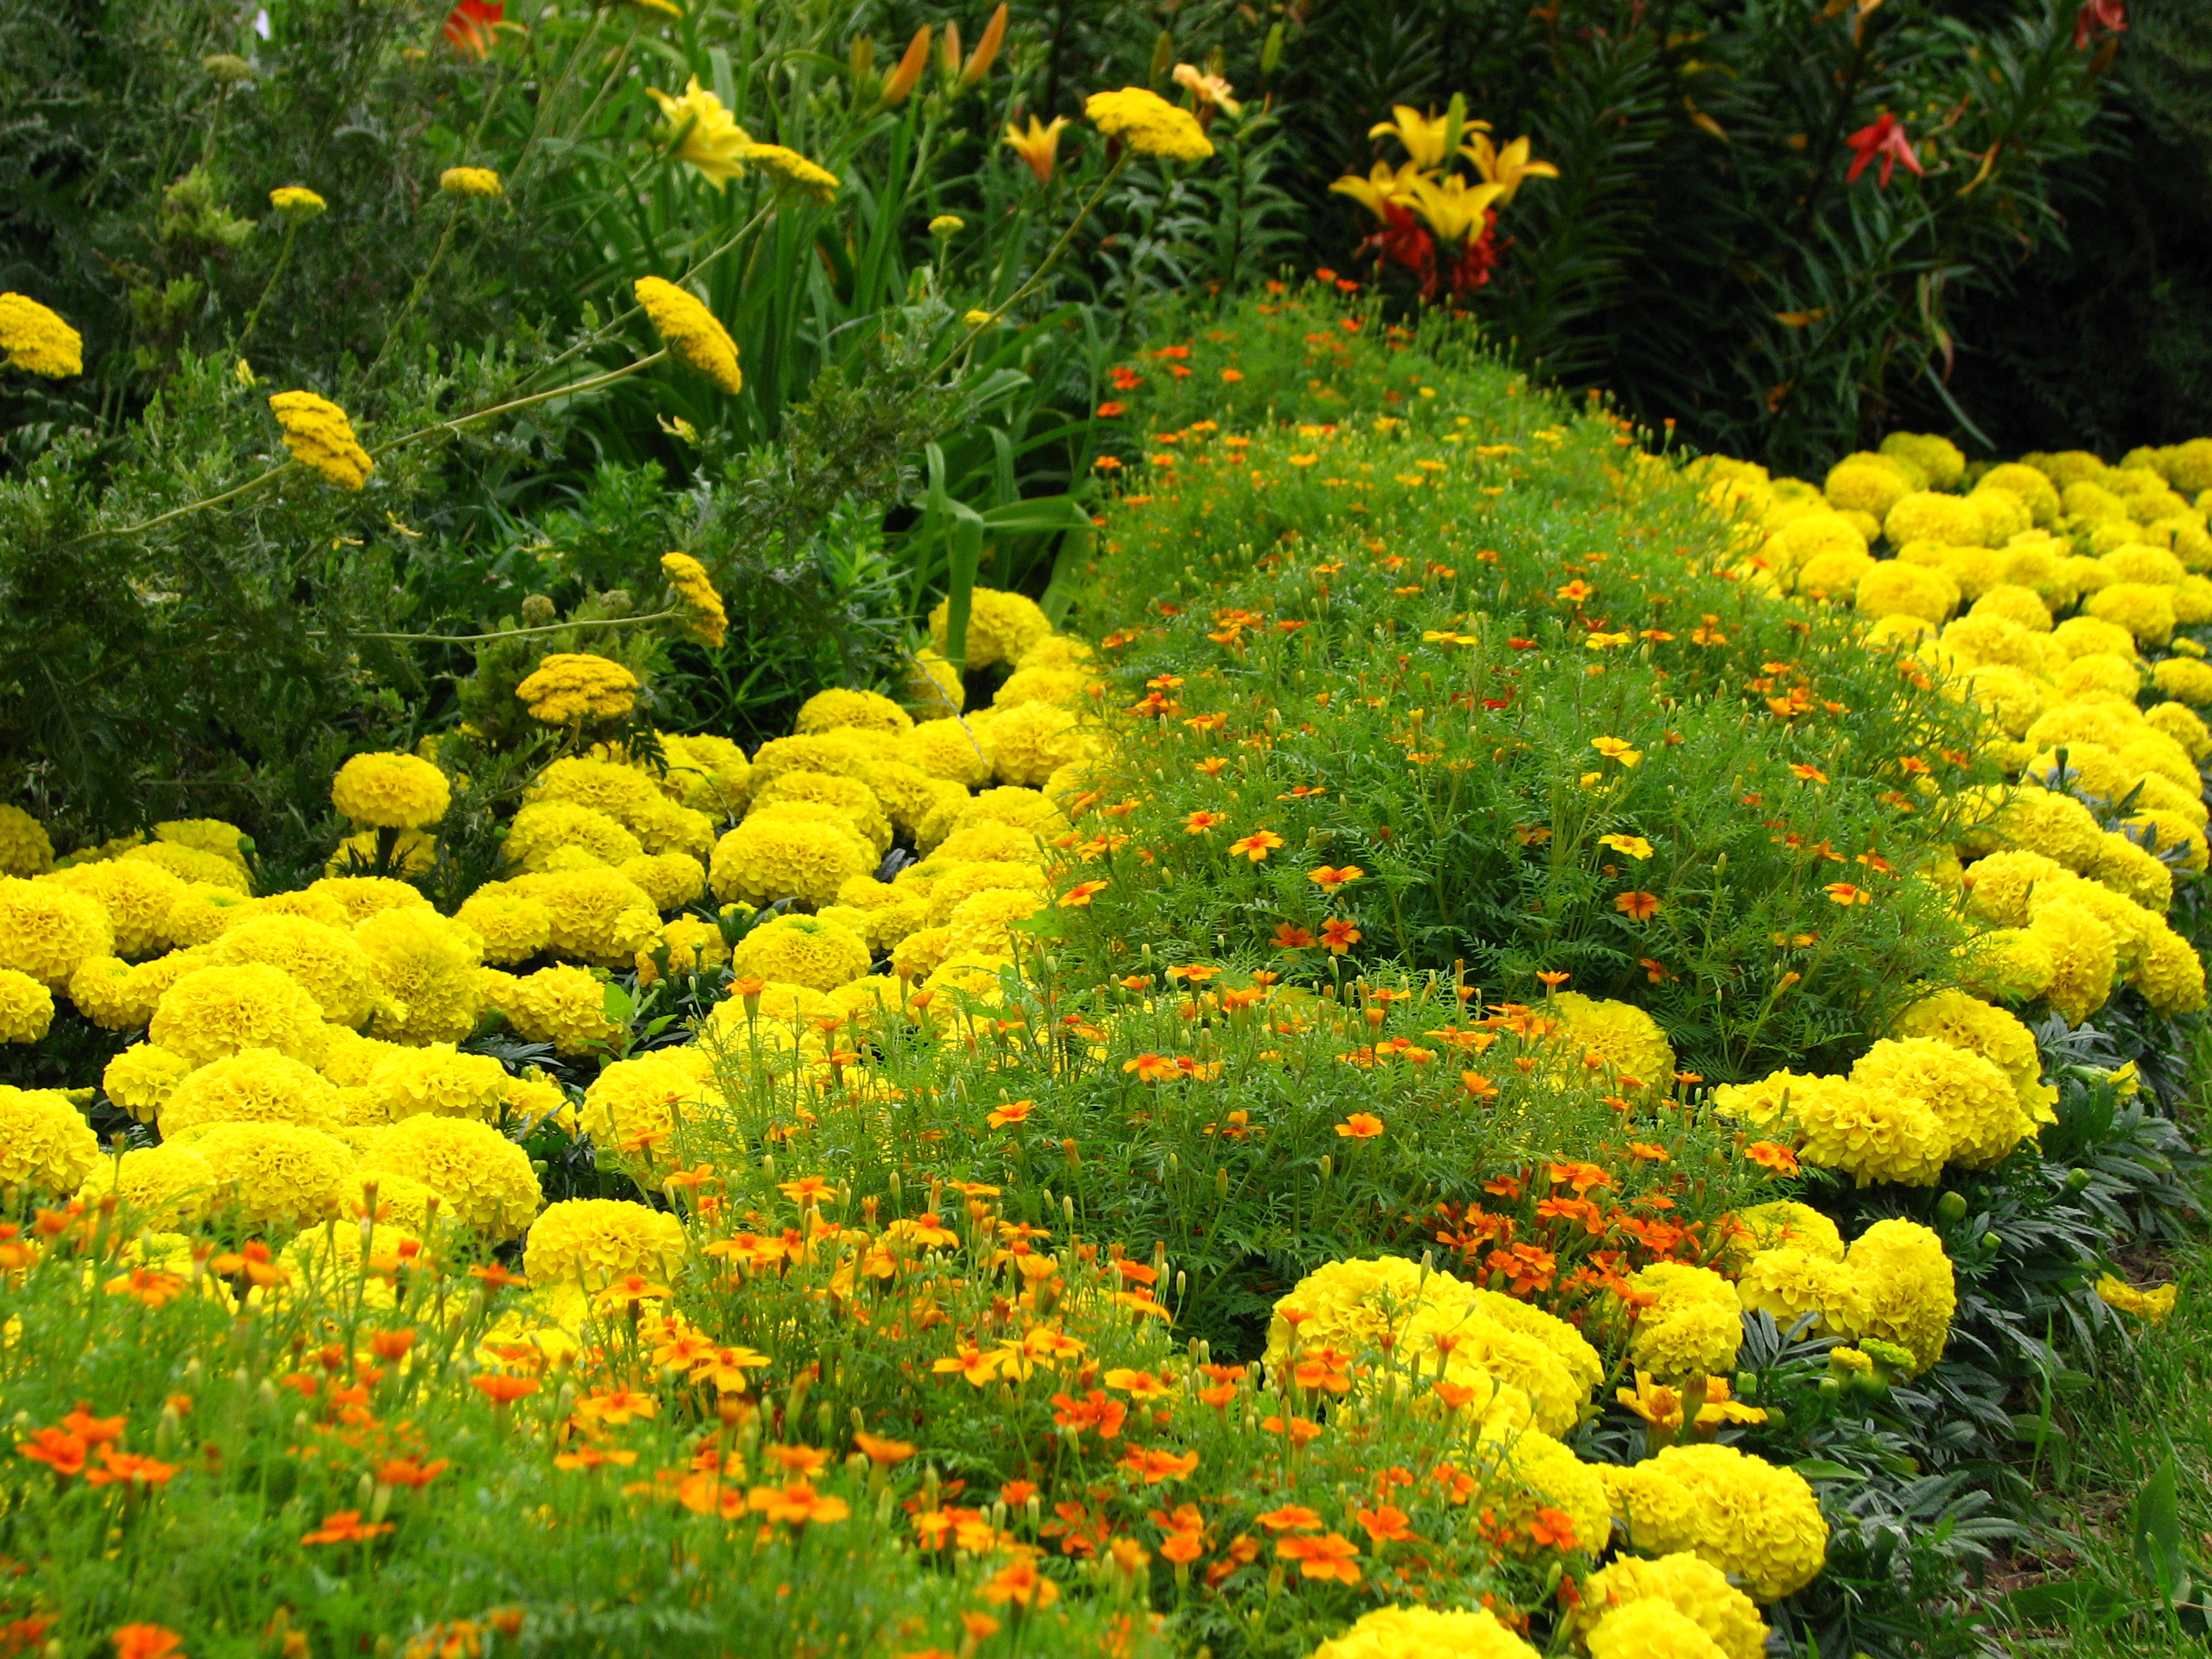 Описание tagetes in flowerbed border 01 jpg